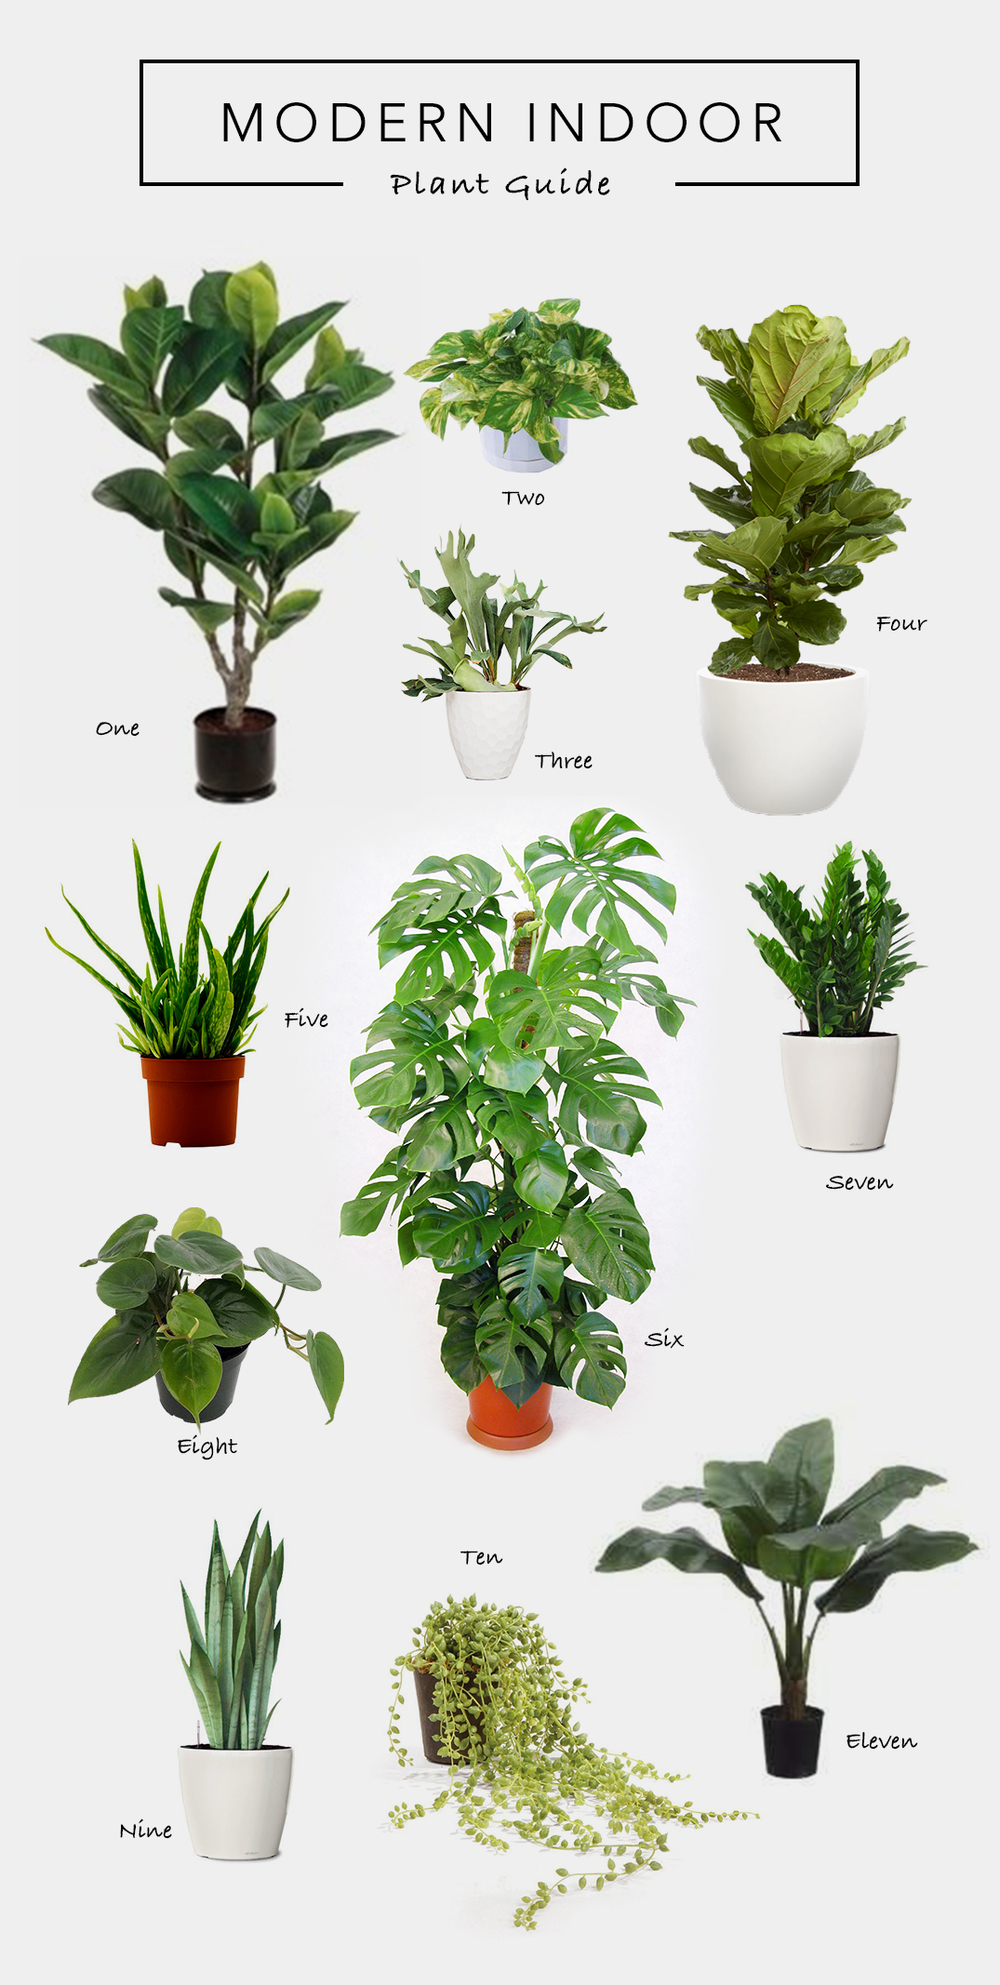 Rubber Tree   Heart Leafed Philodendron   Staghorn Fern   Fiddle Leaf Fig    Aloe Plant